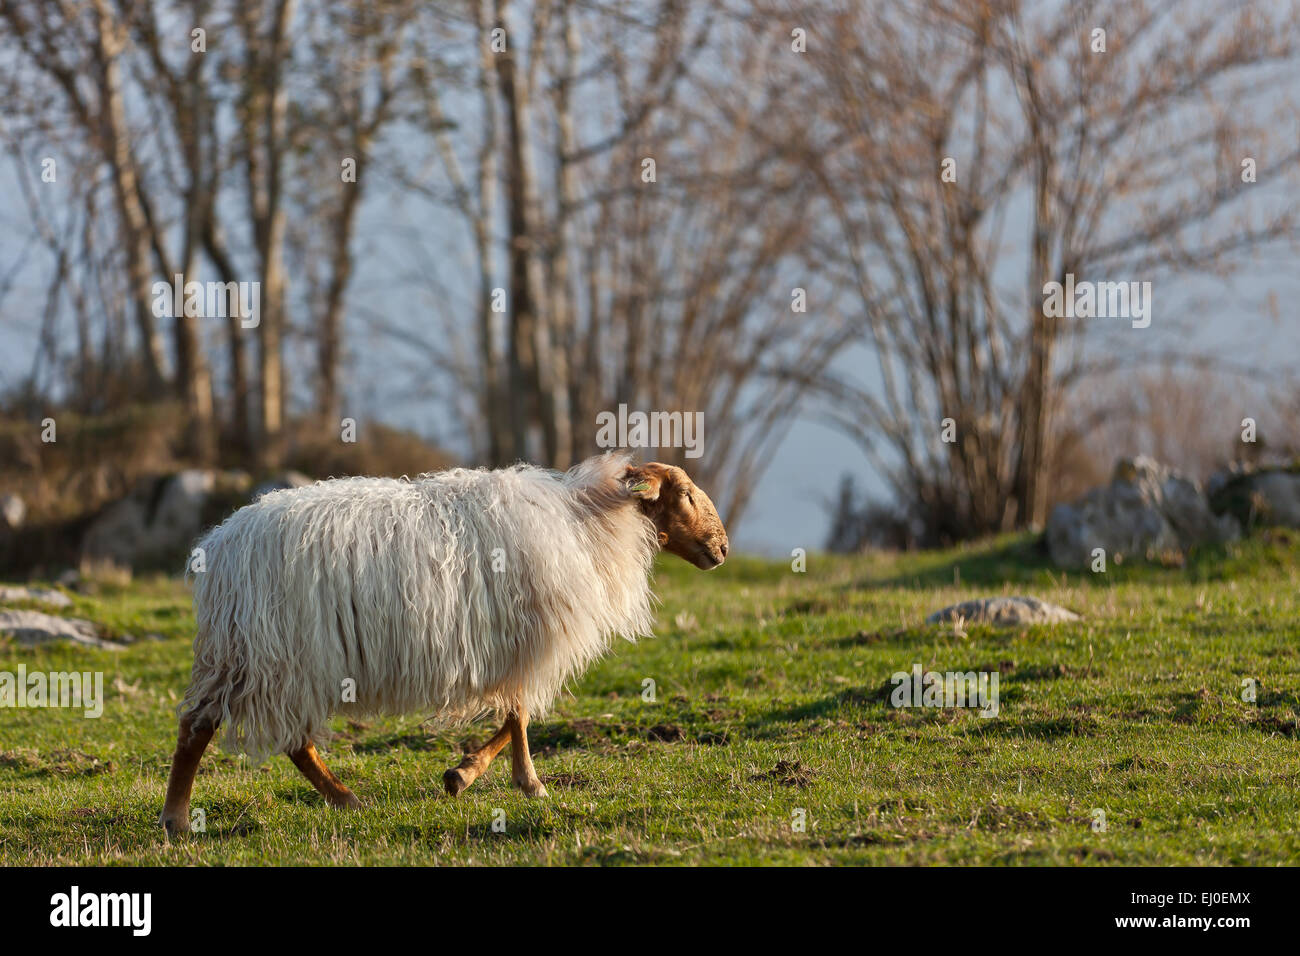 A sheep in Asiego, near the Picos de Europa National Park, Asturias, Spain. - Stock Image